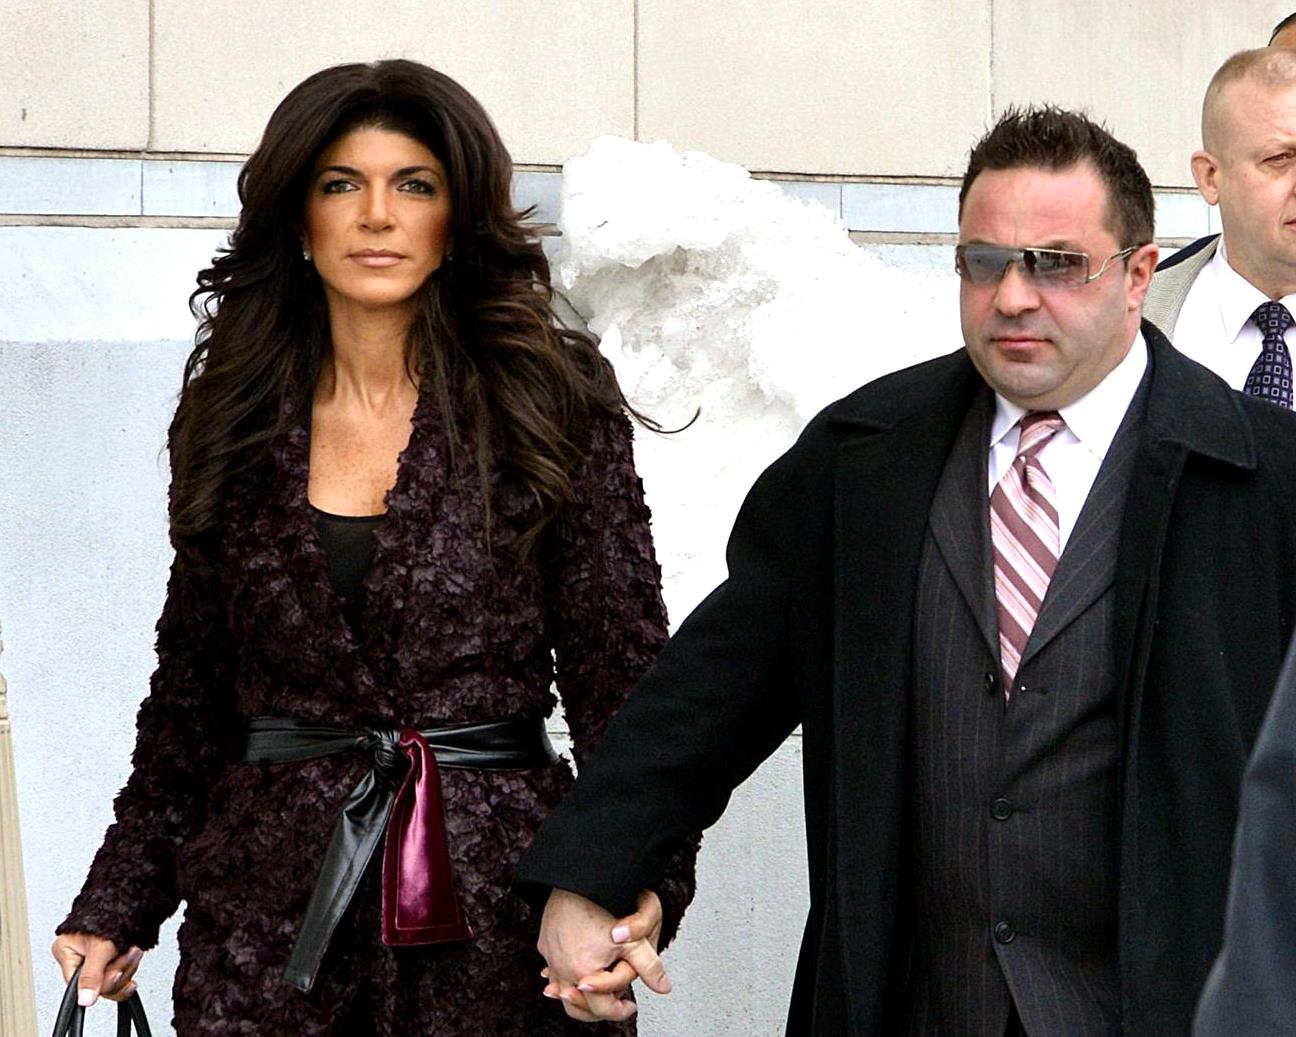 """teresa-giudice-is-yet-to-decide-where-her-relationship-with-joe-is-going-as-he-leaves-for-his-native-italy"""